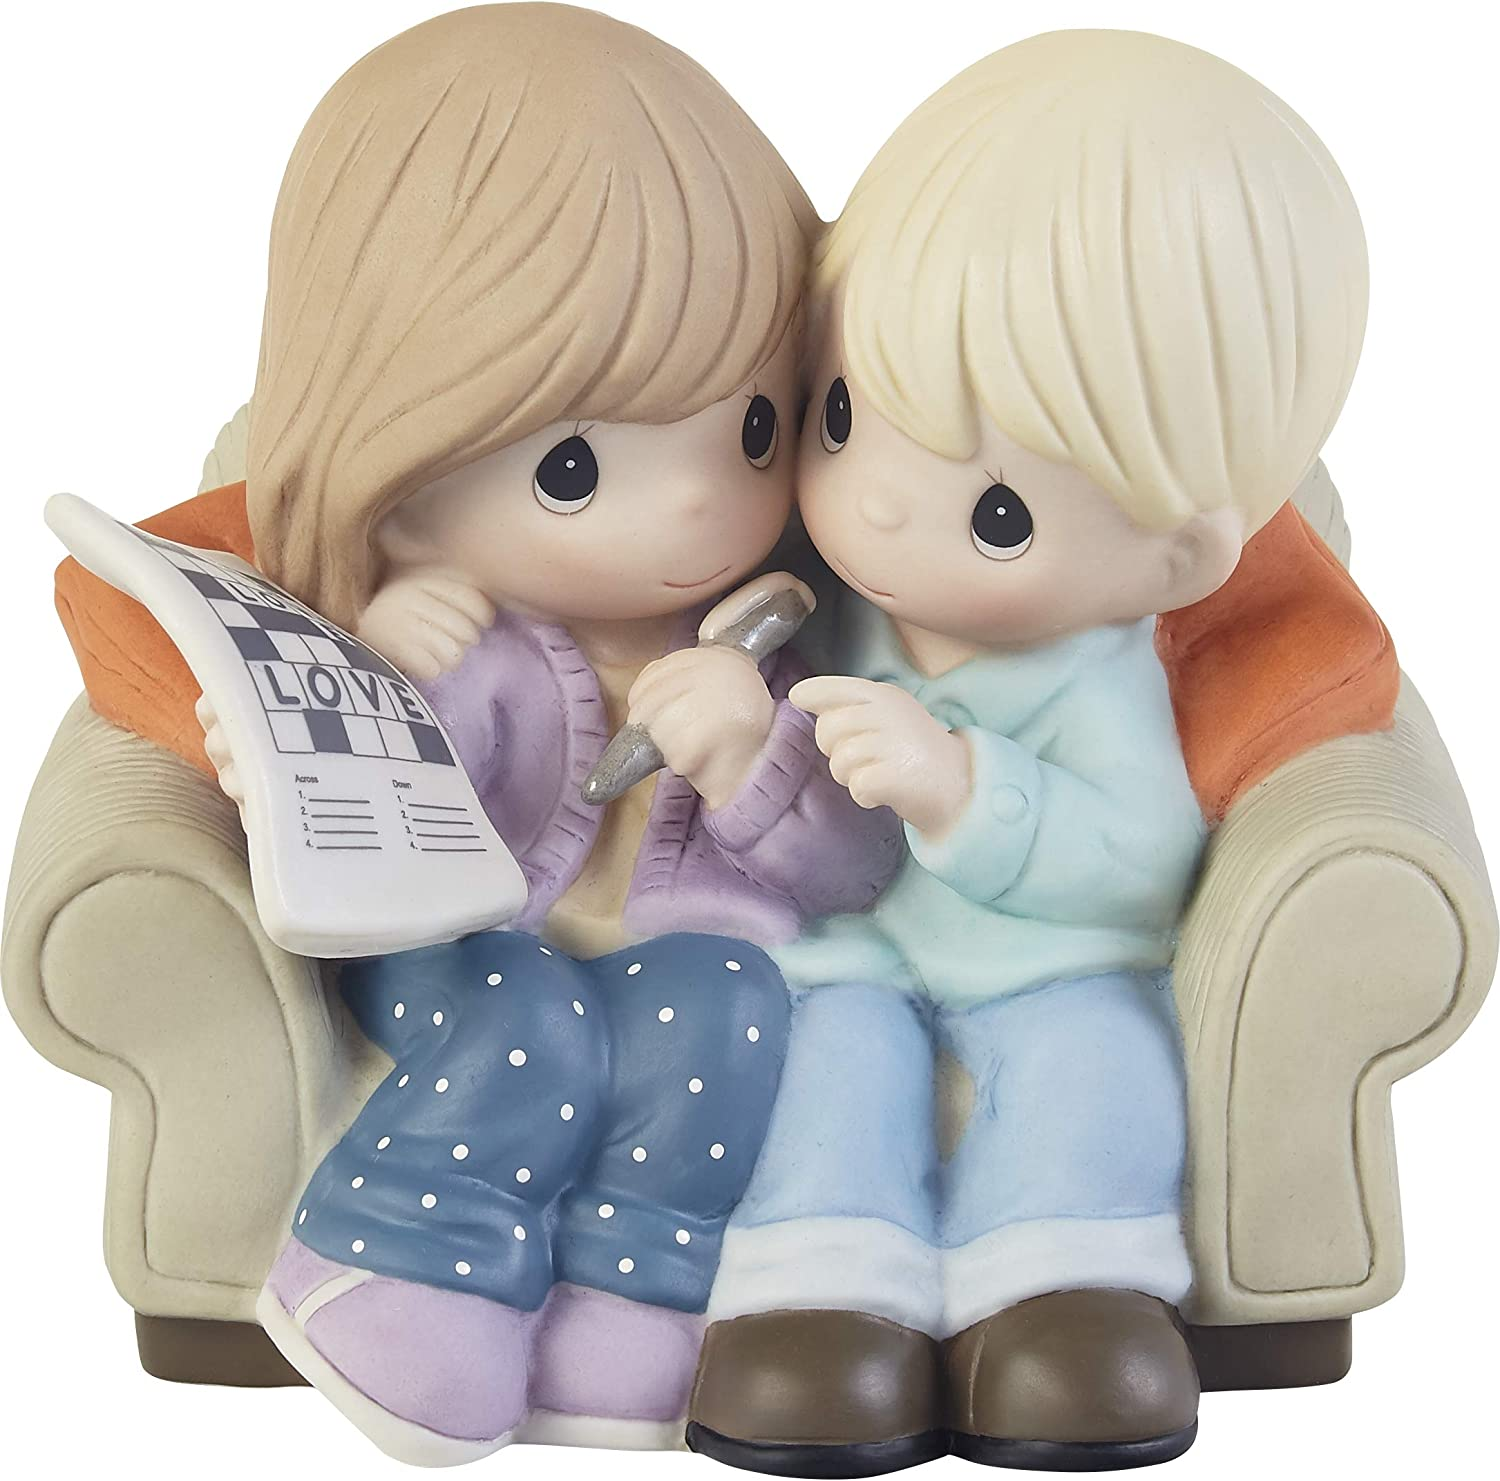 Precious Moments 203003 Love is The Answer Bisque Porcelain Figurine